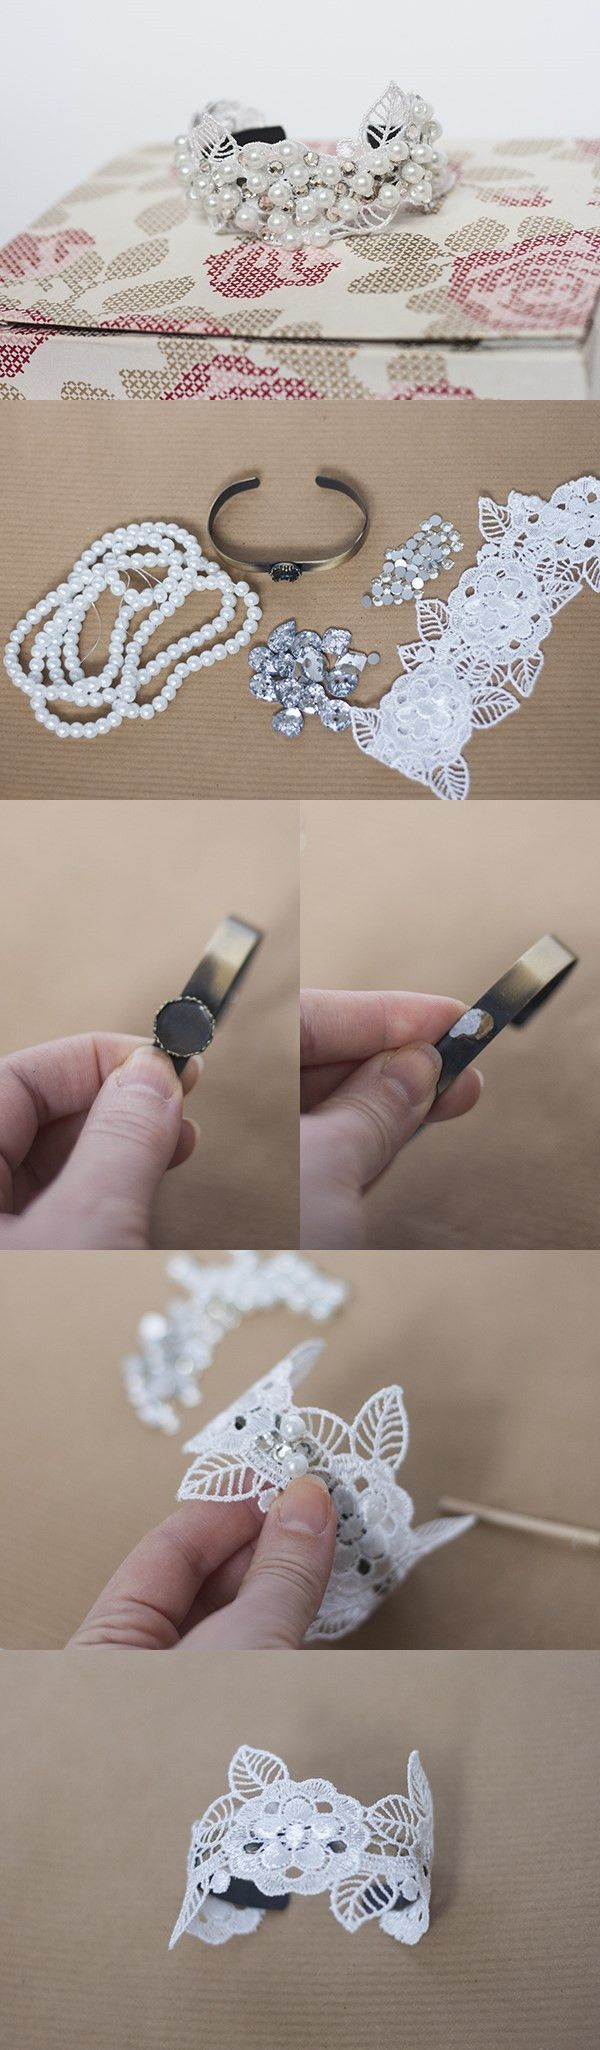 Tutorial on How to Make a Lace Cuff Bracelet with Pearl Beads